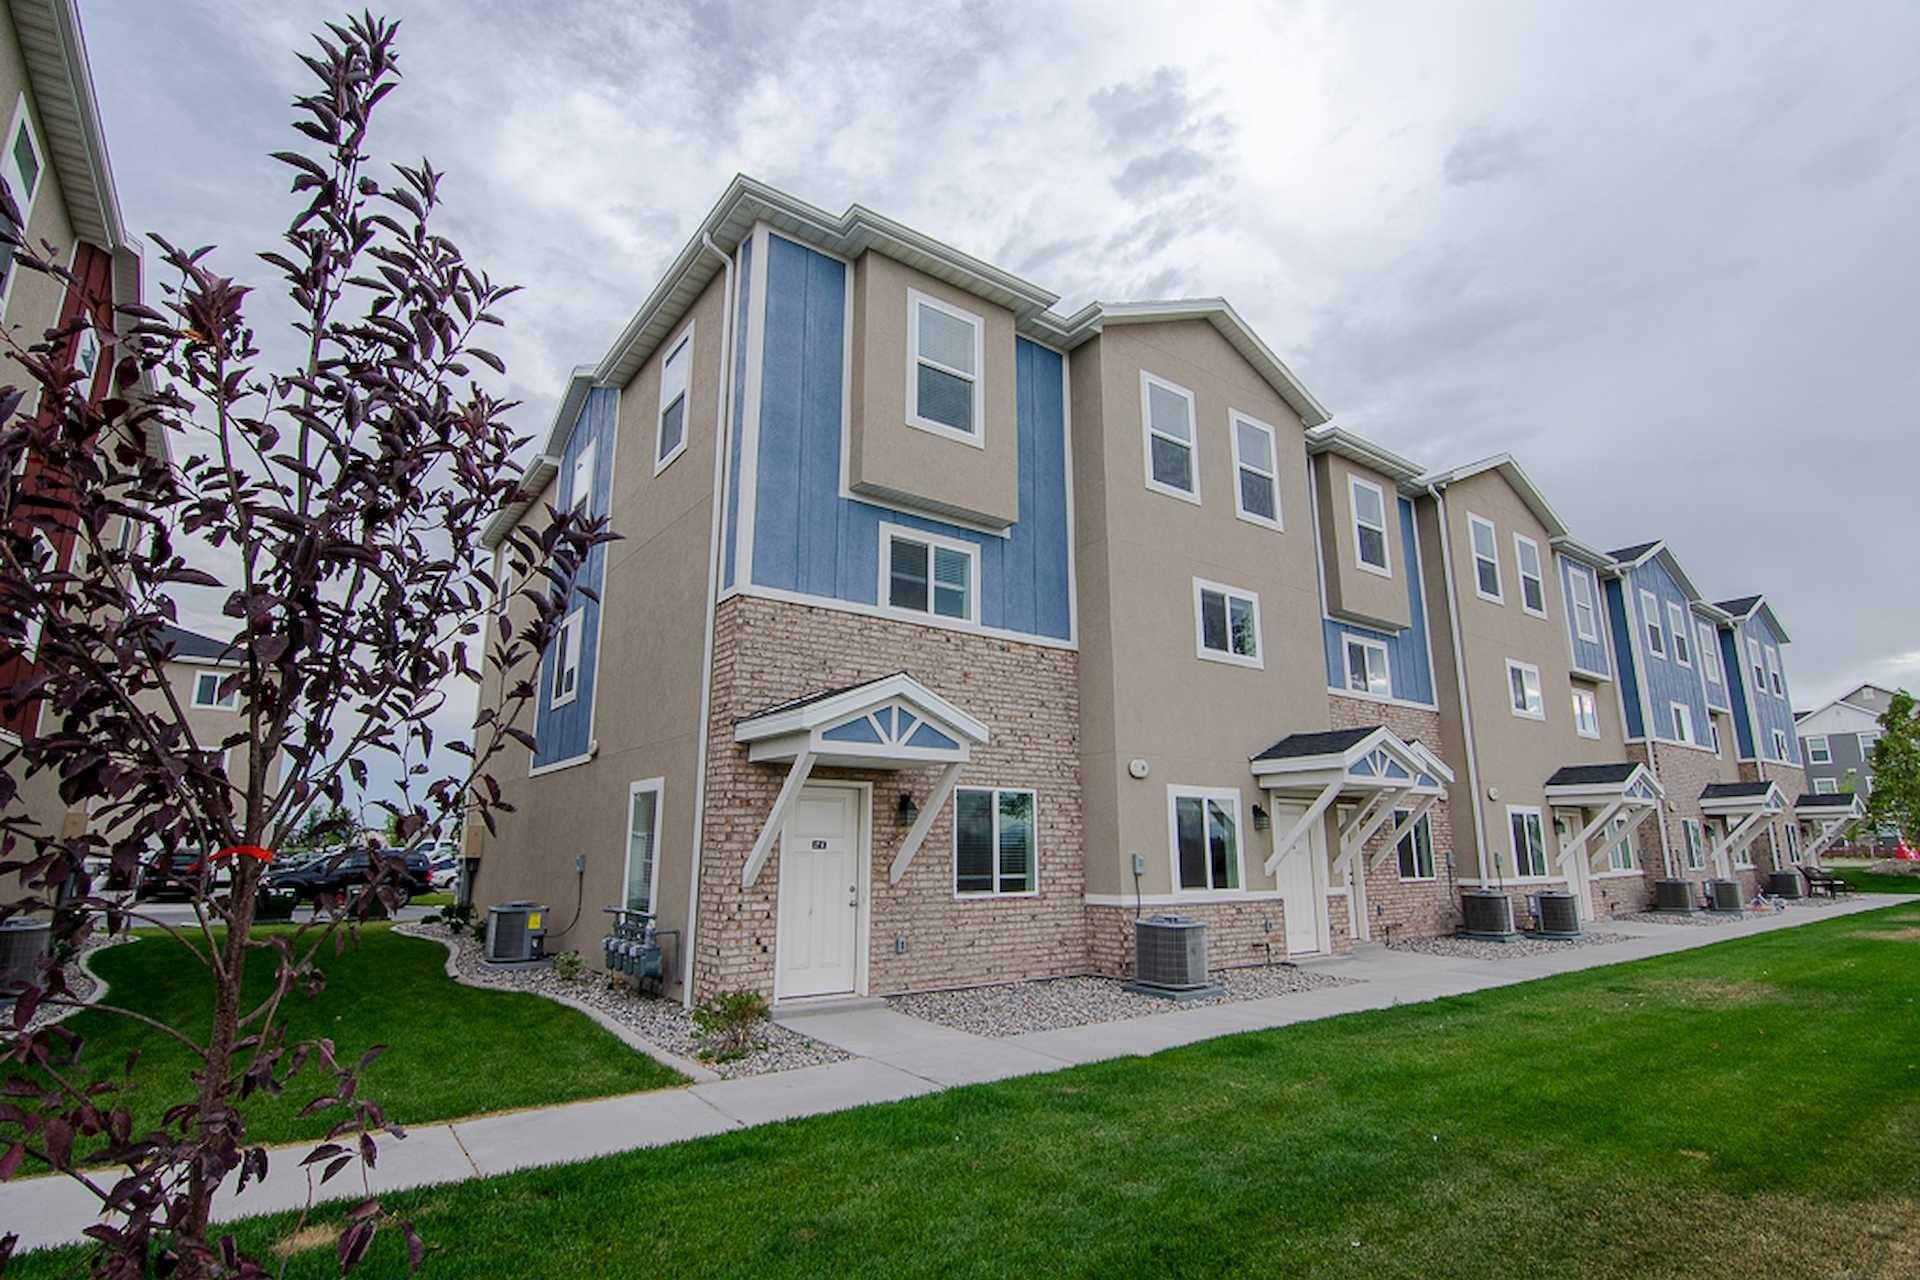 A FIG fourplex development in Utah County